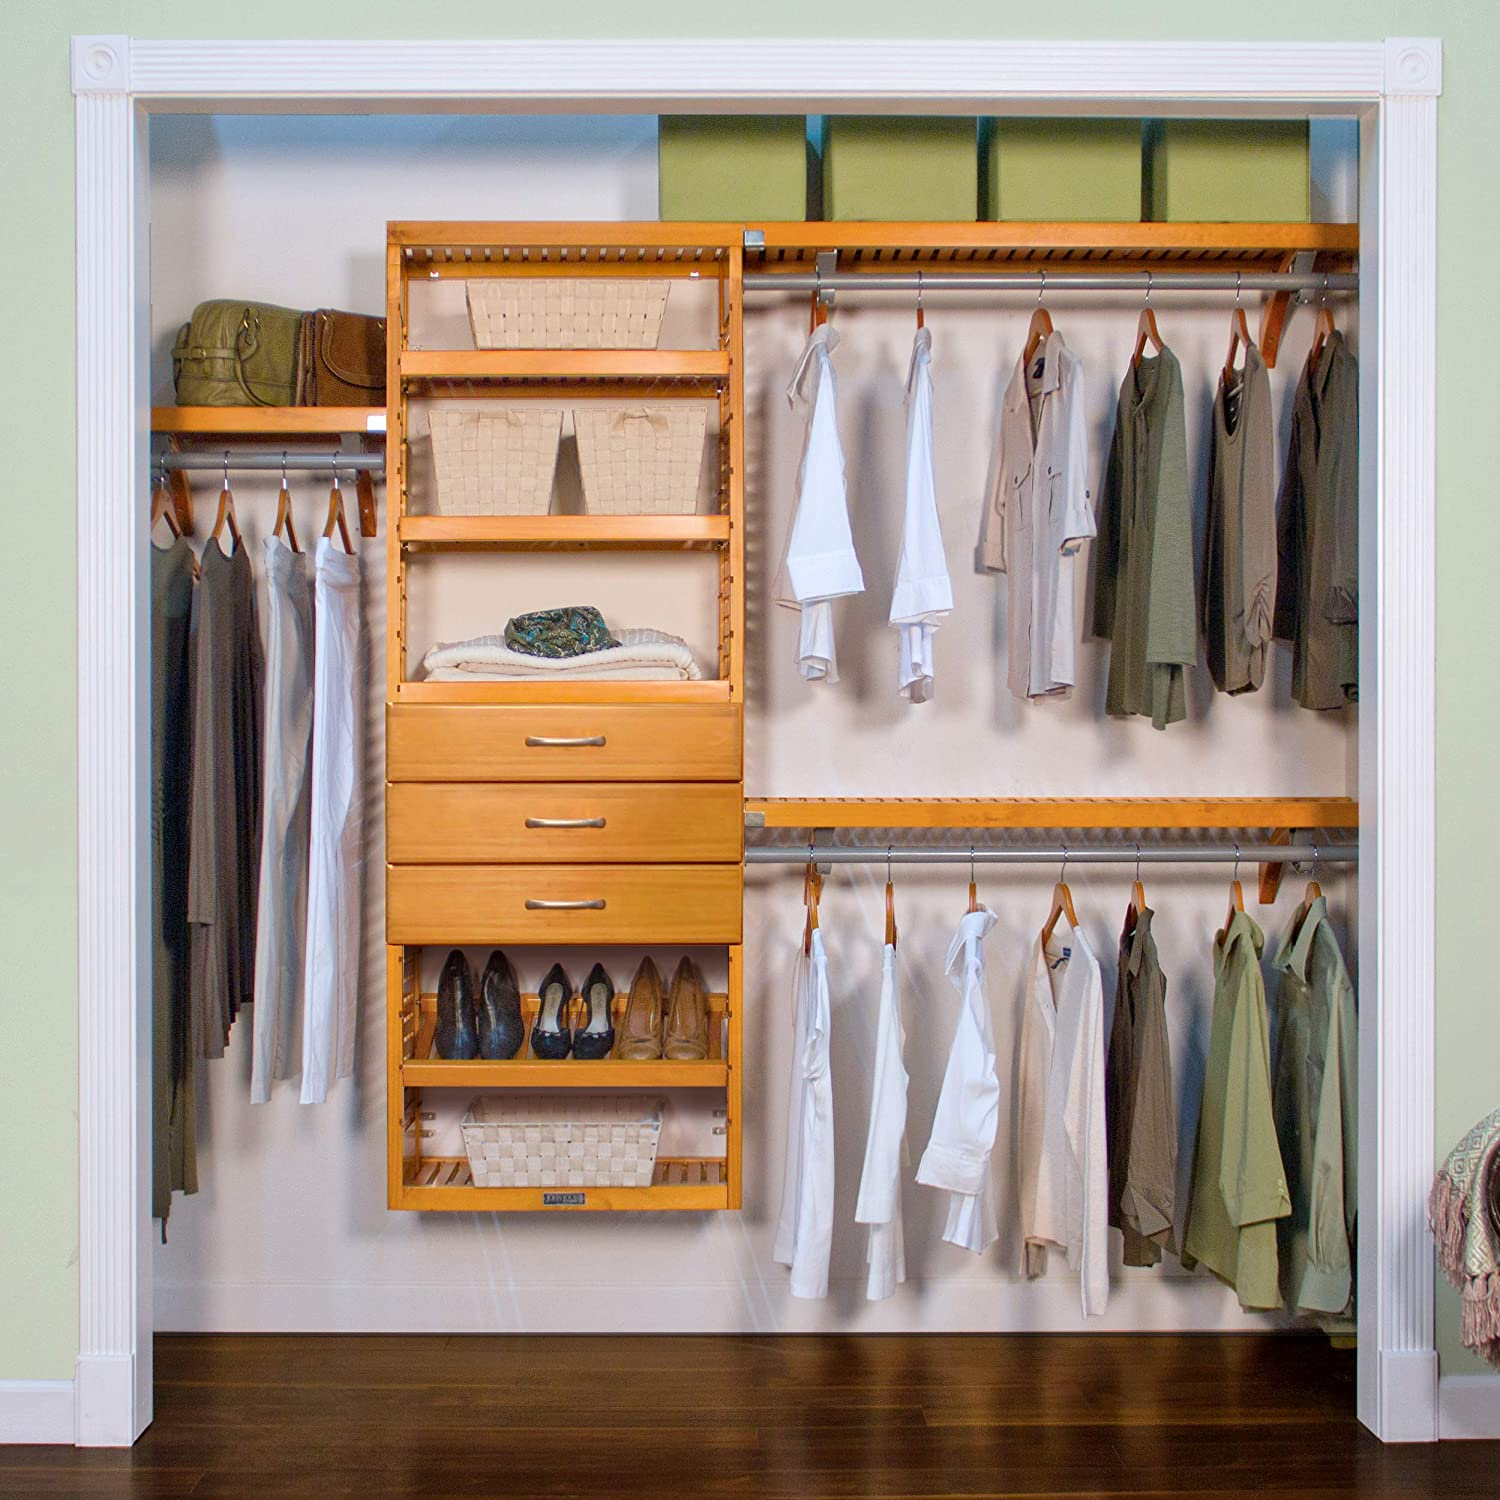 John Louis Home 12in. Deep Premier Organizer New sales Sales results No. 1 3 Drawers 6in with